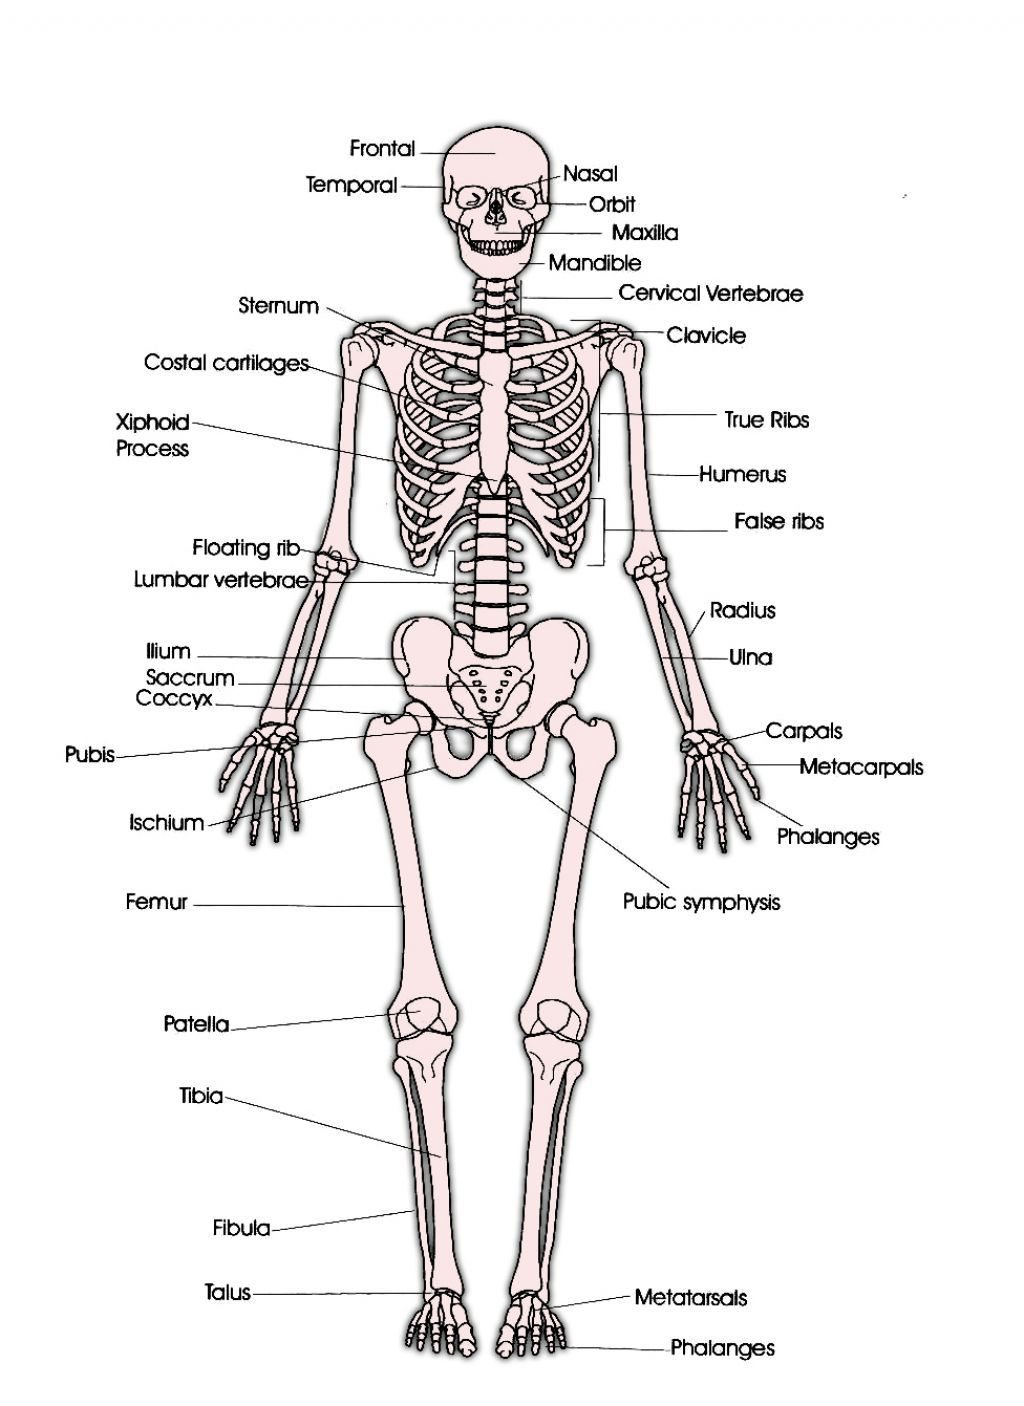 hight resolution of unlabeled diagram of the human skeleton unlabeled diagram of the human skeleton skeletal system unlabeled